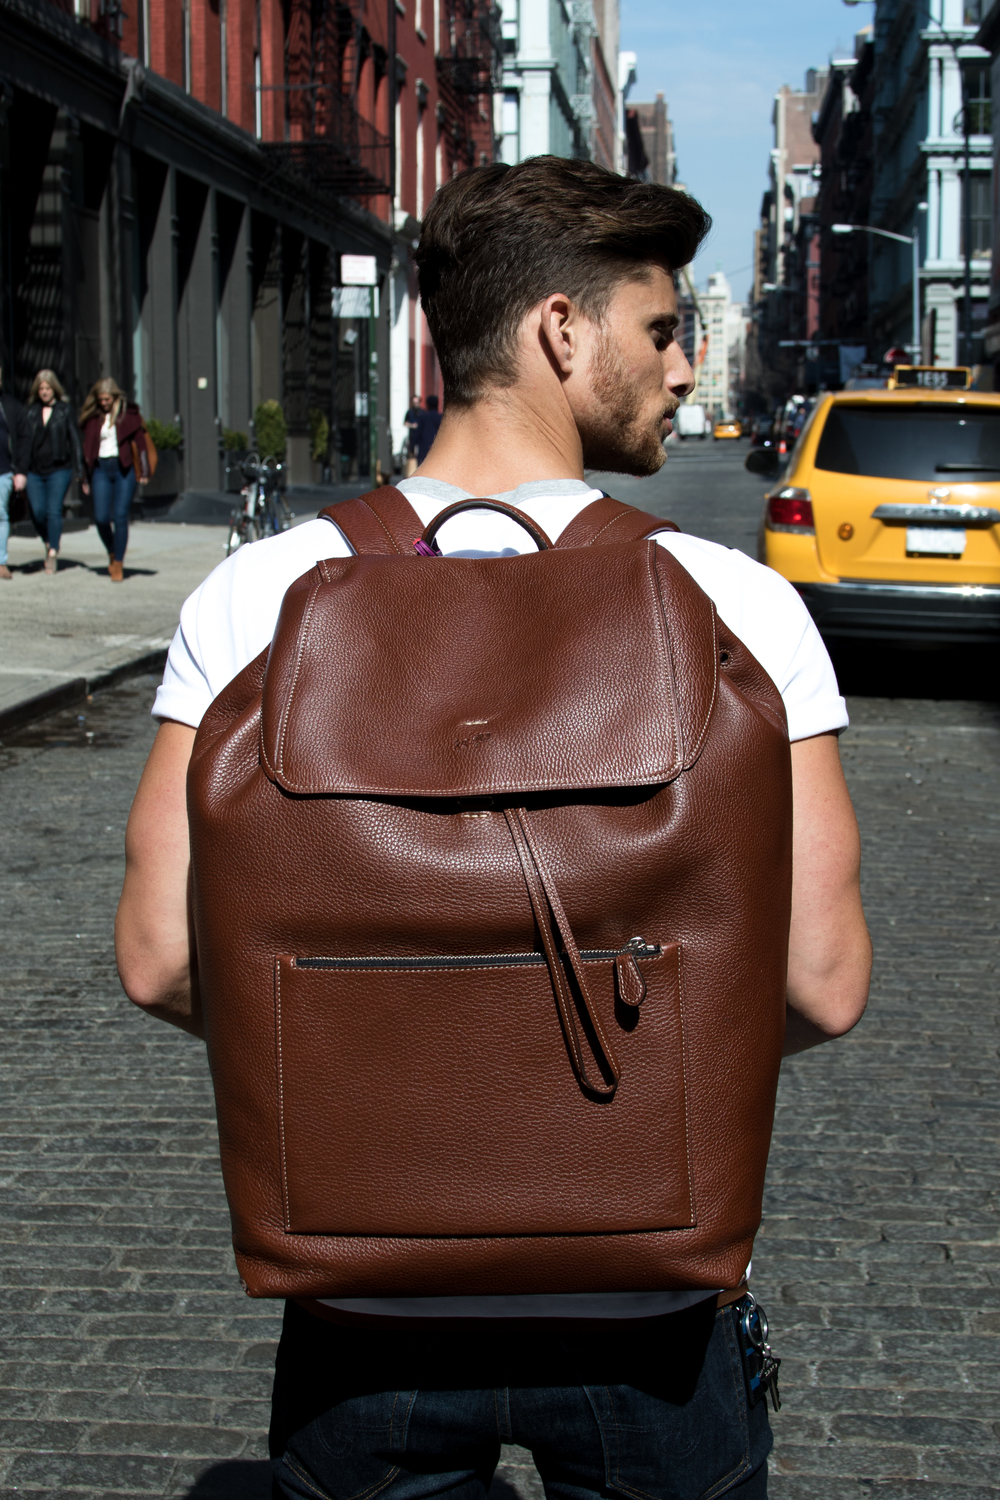 Large Manhattan Backpack | Bottle Opener Bag Charm